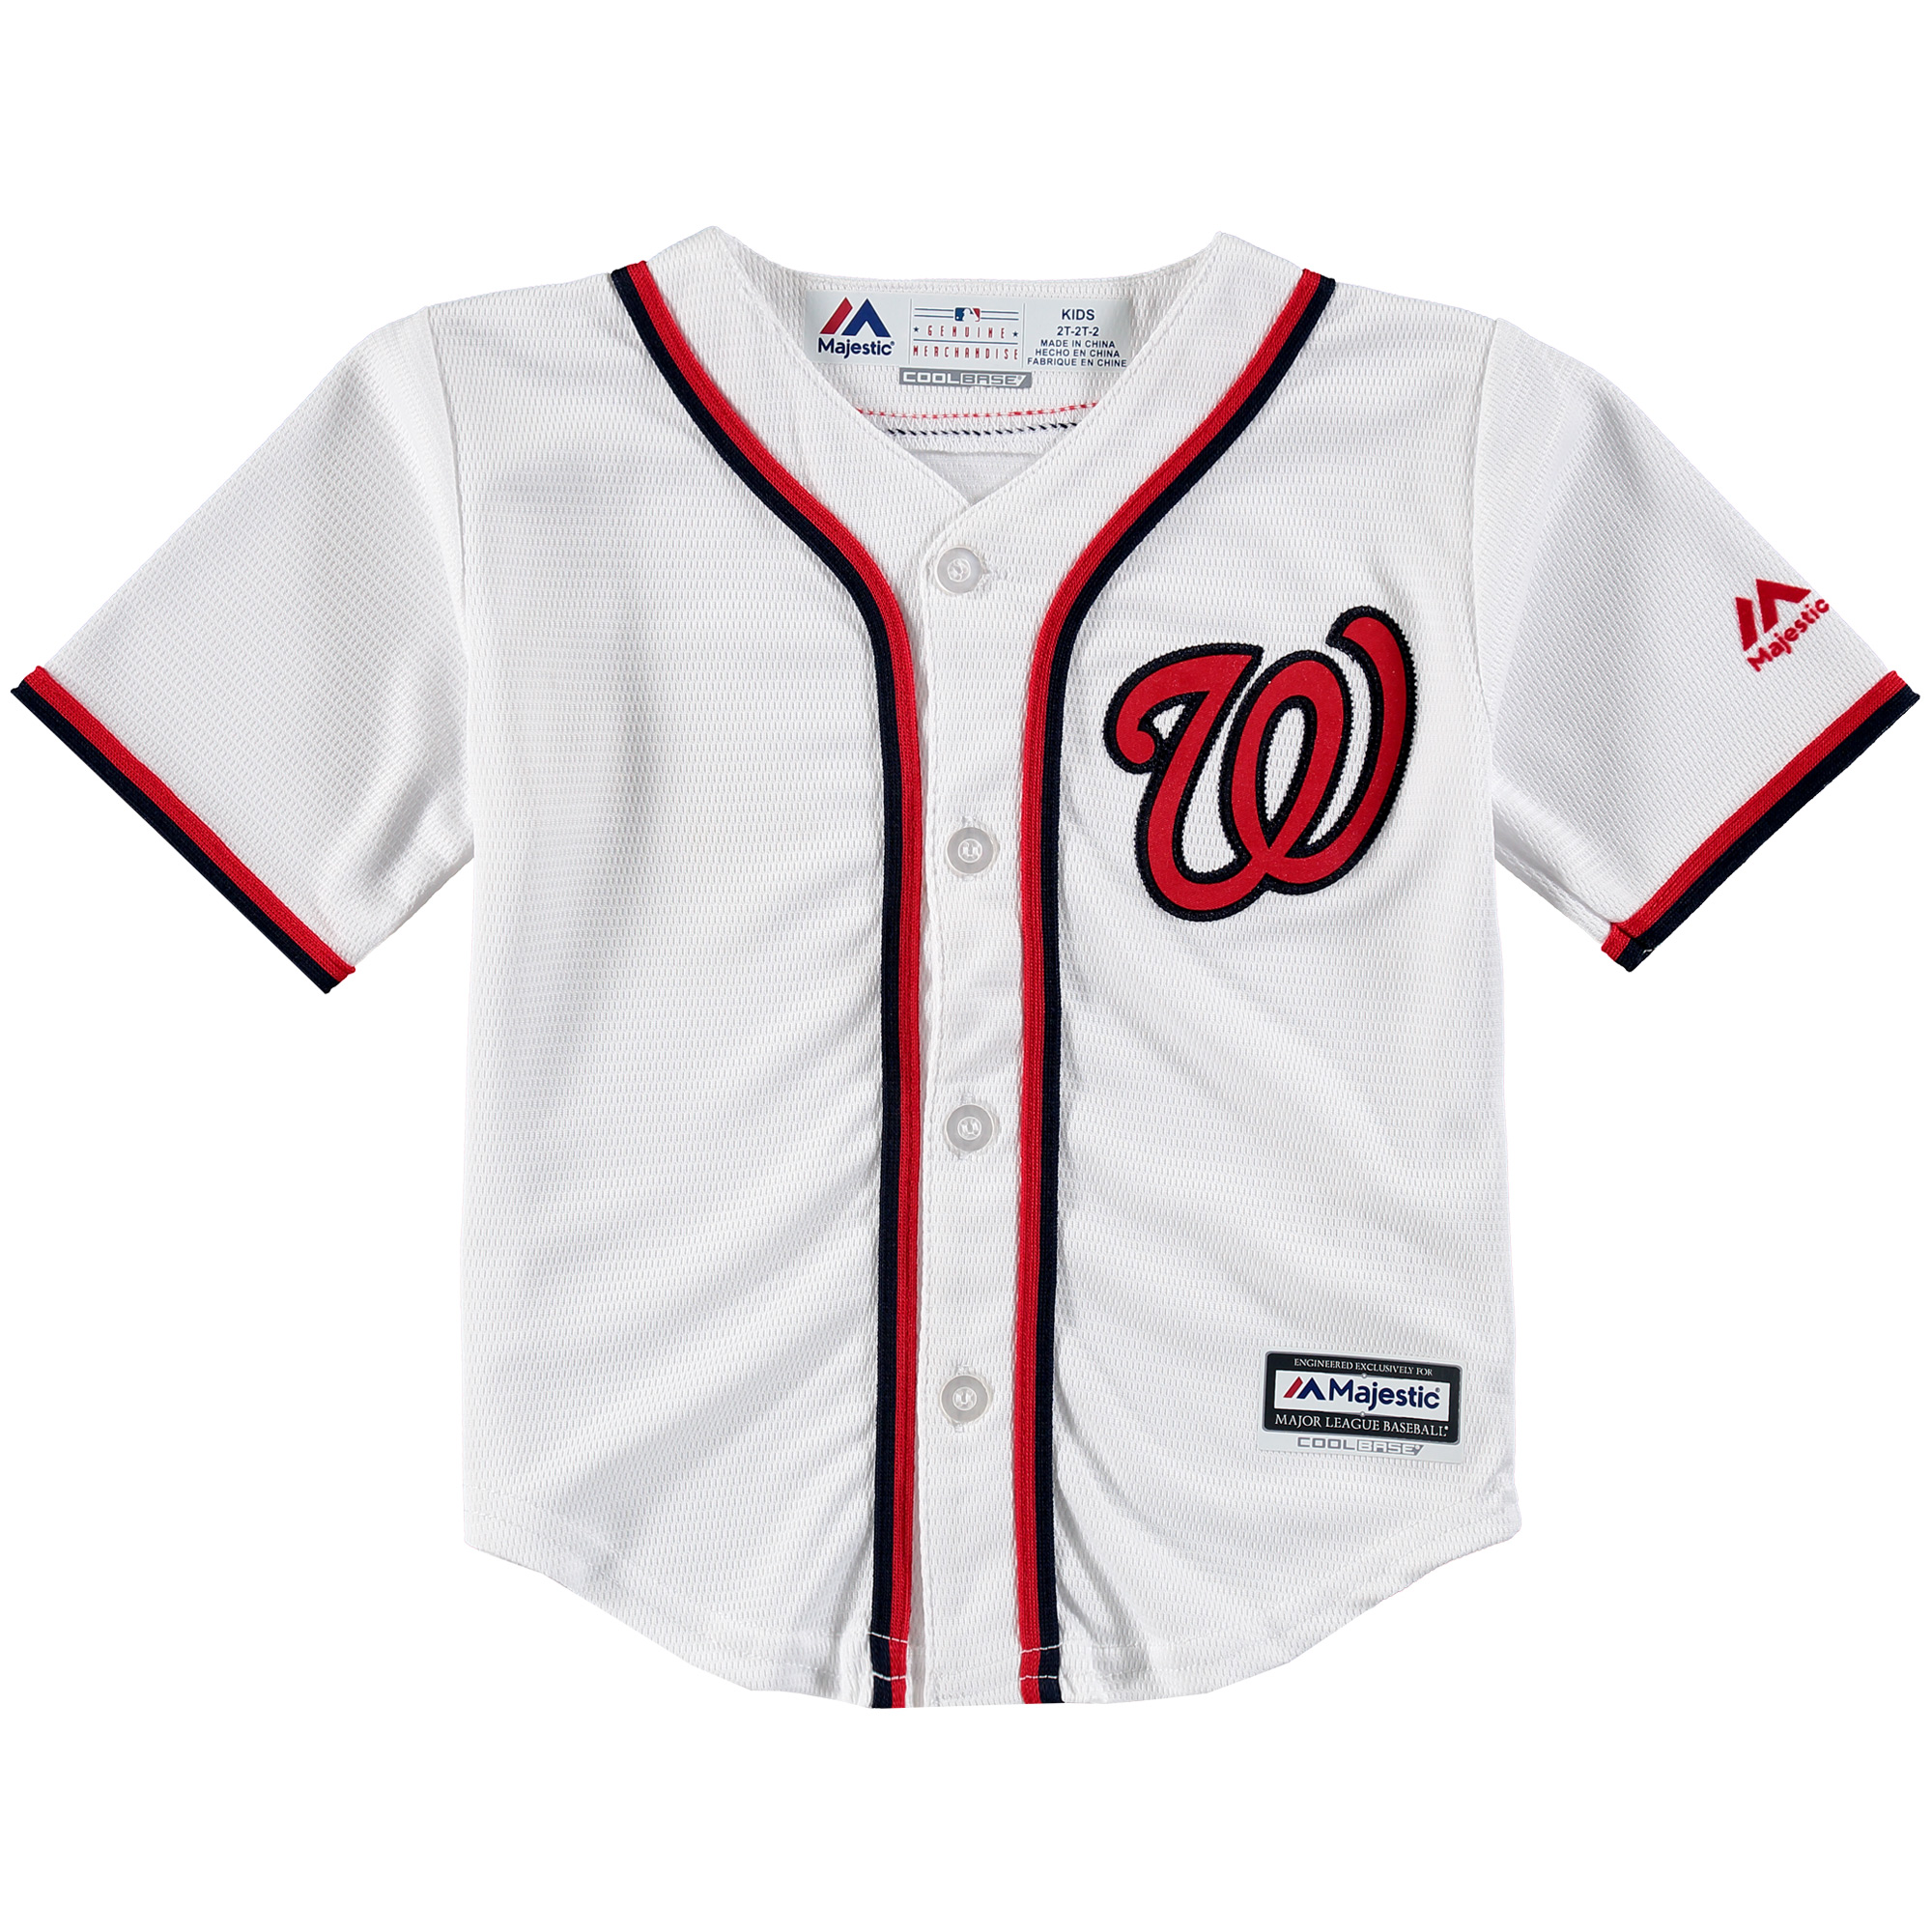 Washington Nationals Majestic Toddler Official Cool Base Jersey - White